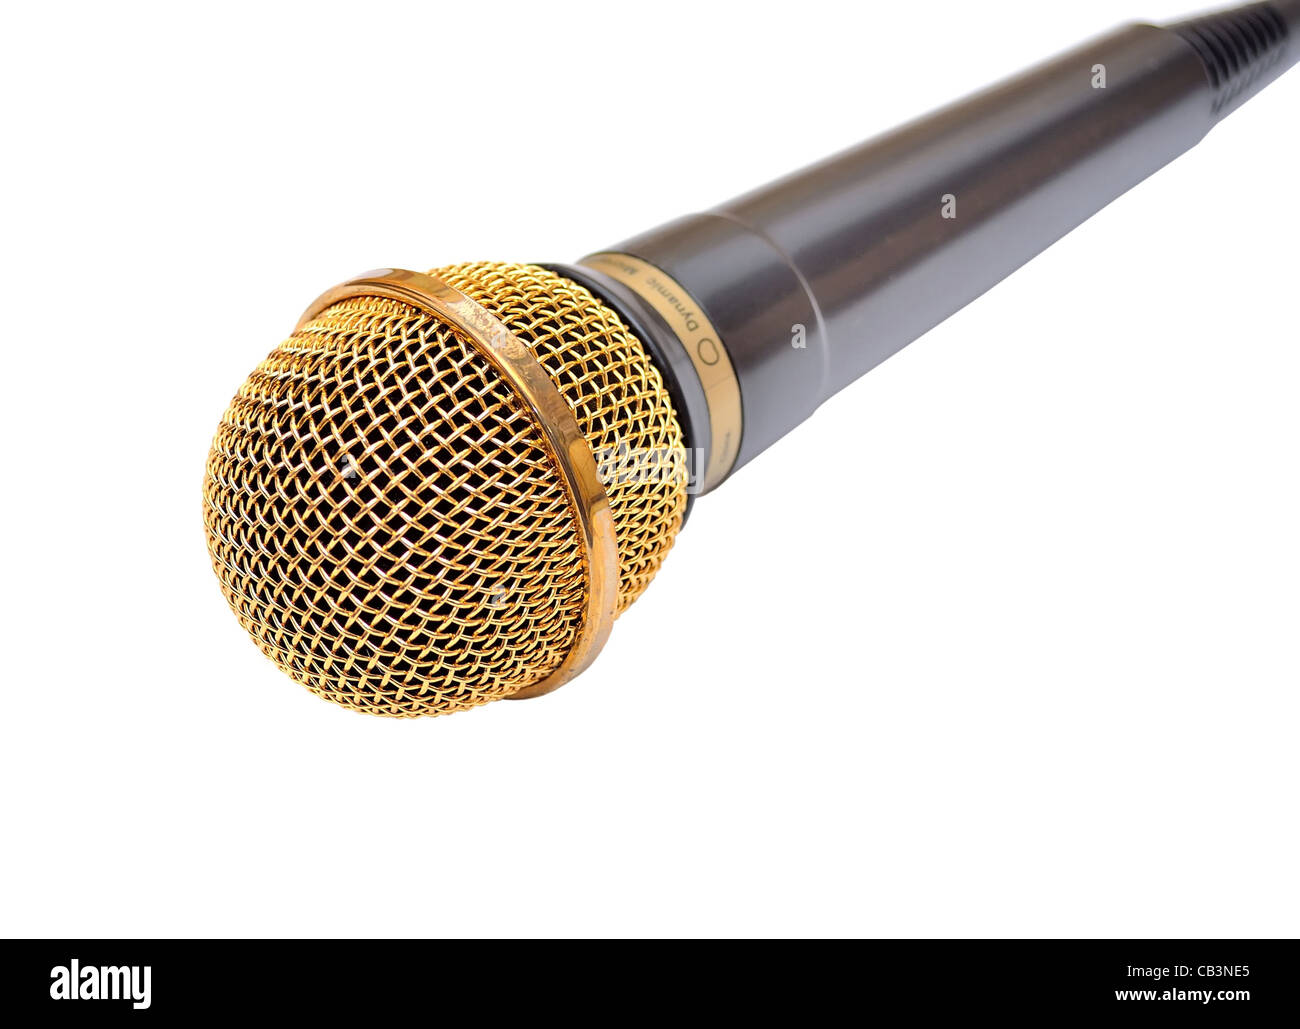 Microphone or isolated on white Photo Stock